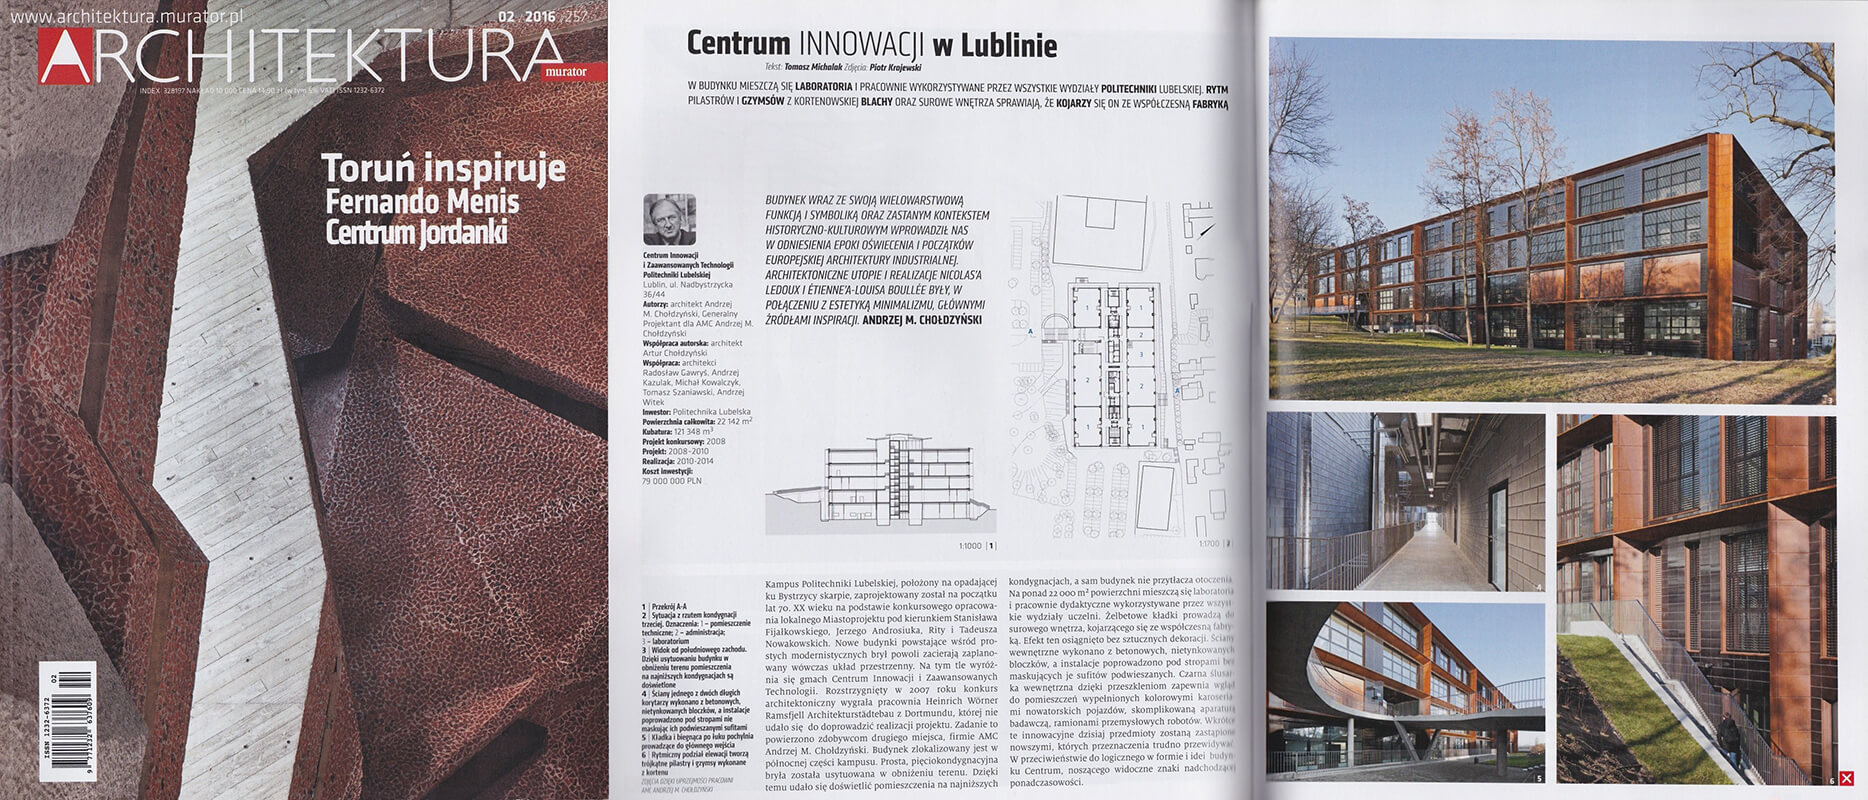 Center for Innovation and Advanced Technologies of the Lublin University of Technology in Lublin - Architektura Murator 02/2016